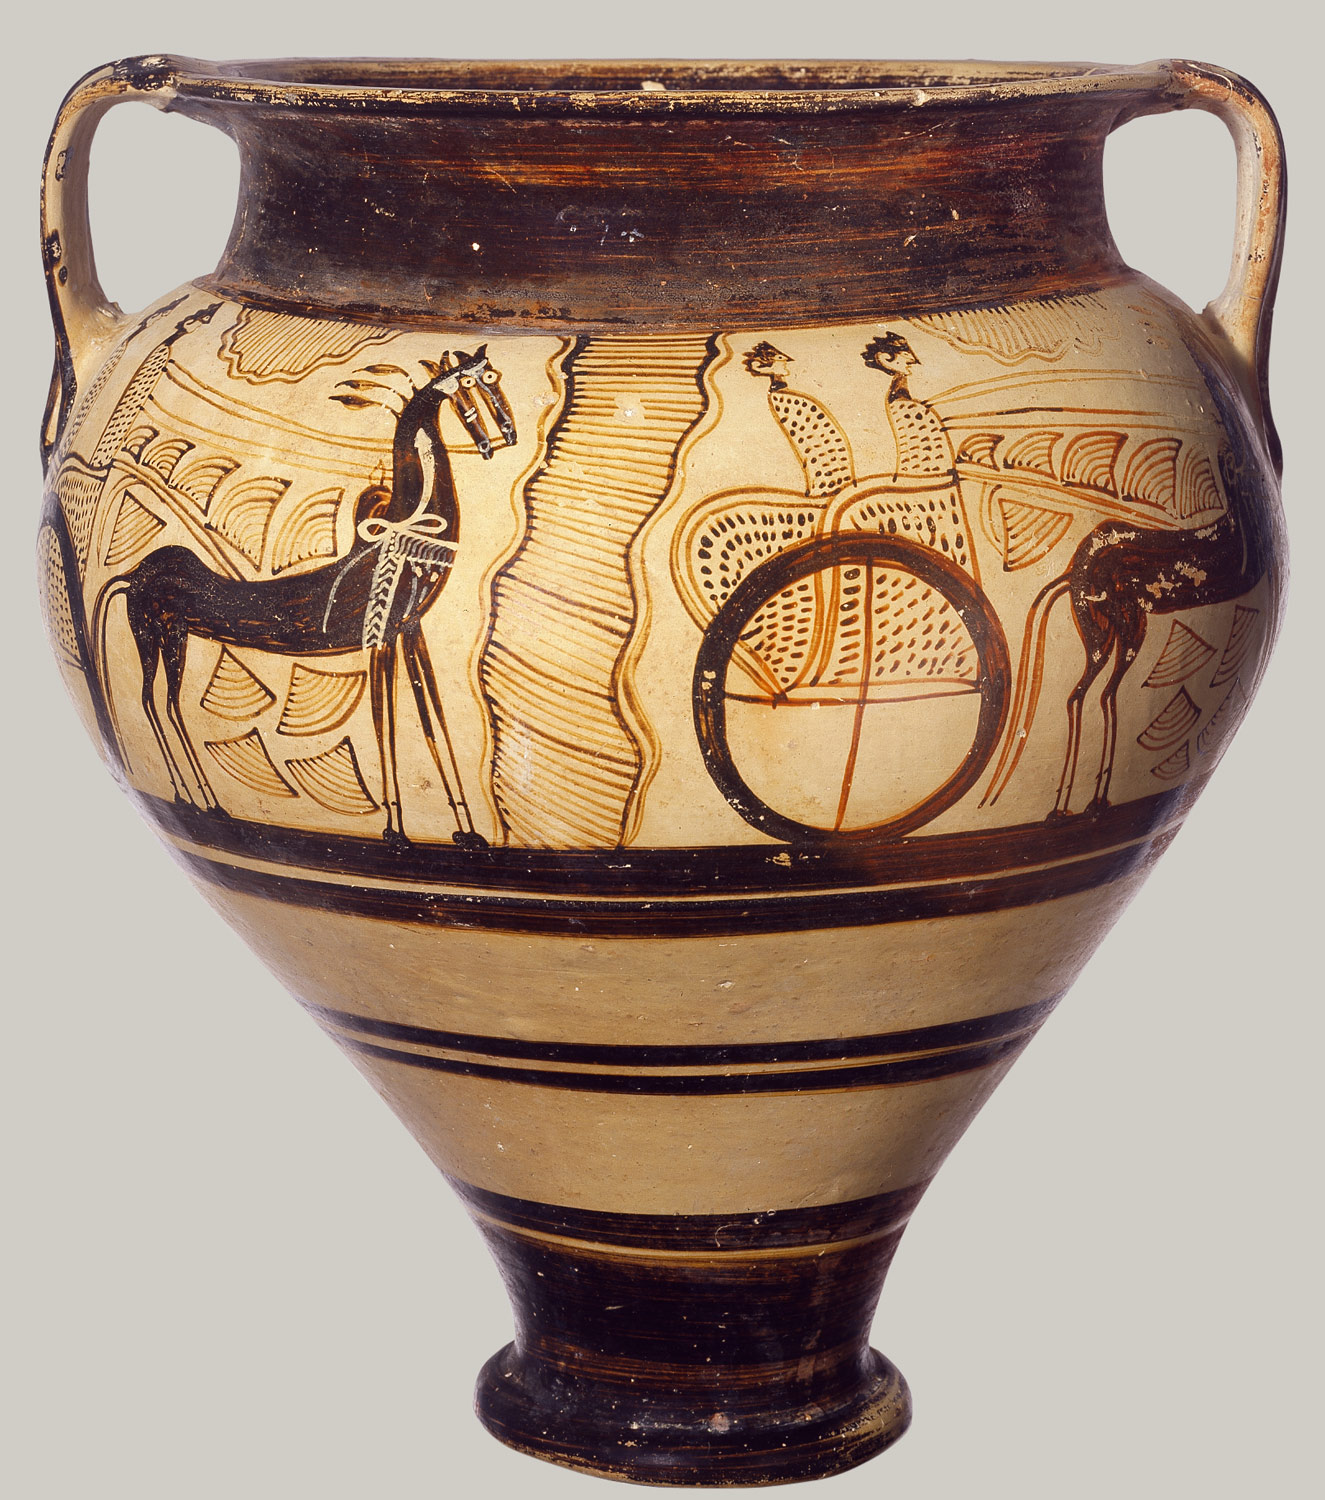 Terracotta chariot krater